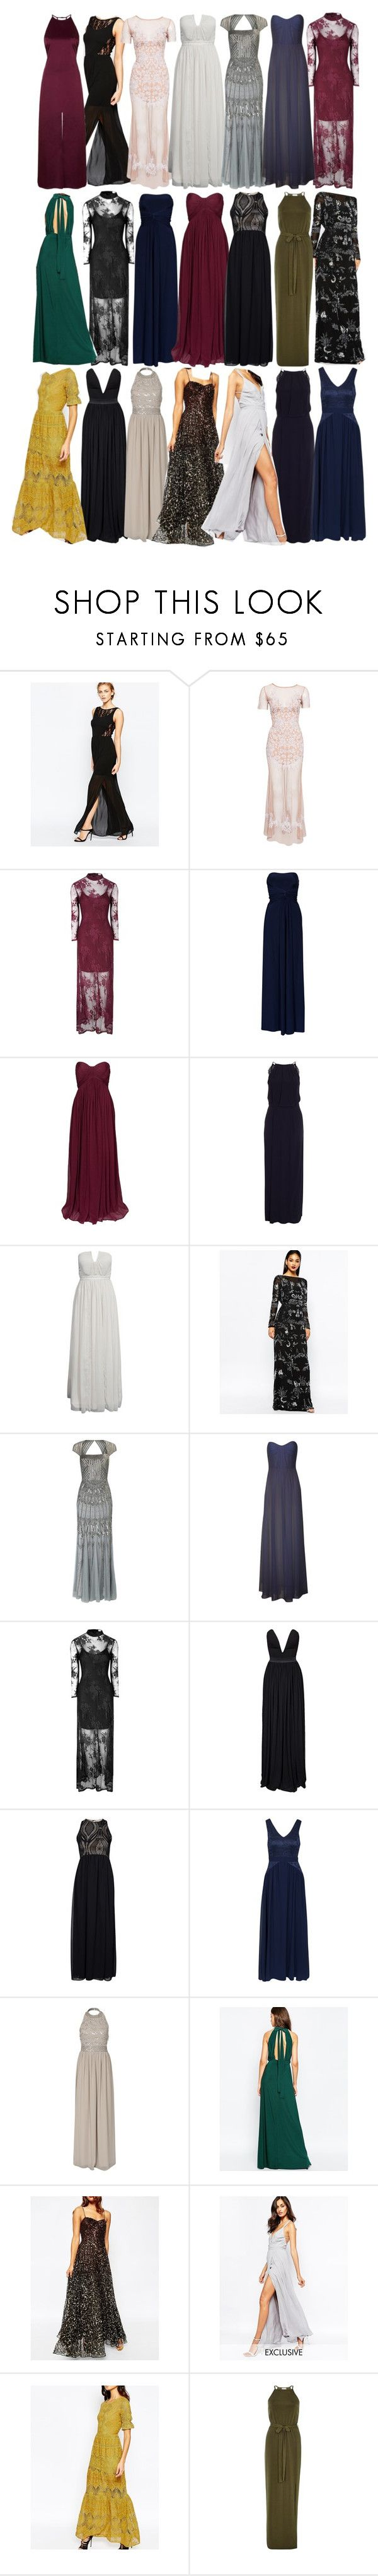 """""""Allison Inspired UK Friendly Gowns"""" by veterization ❤ liked on Polyvore featuring WalG, For Love & Lemons, True Decadence, NLY Eve, Samsøe & Samsøe, Virgos Lounge, Adrianna Papell, Rare London, John Zack and Sisters Point"""